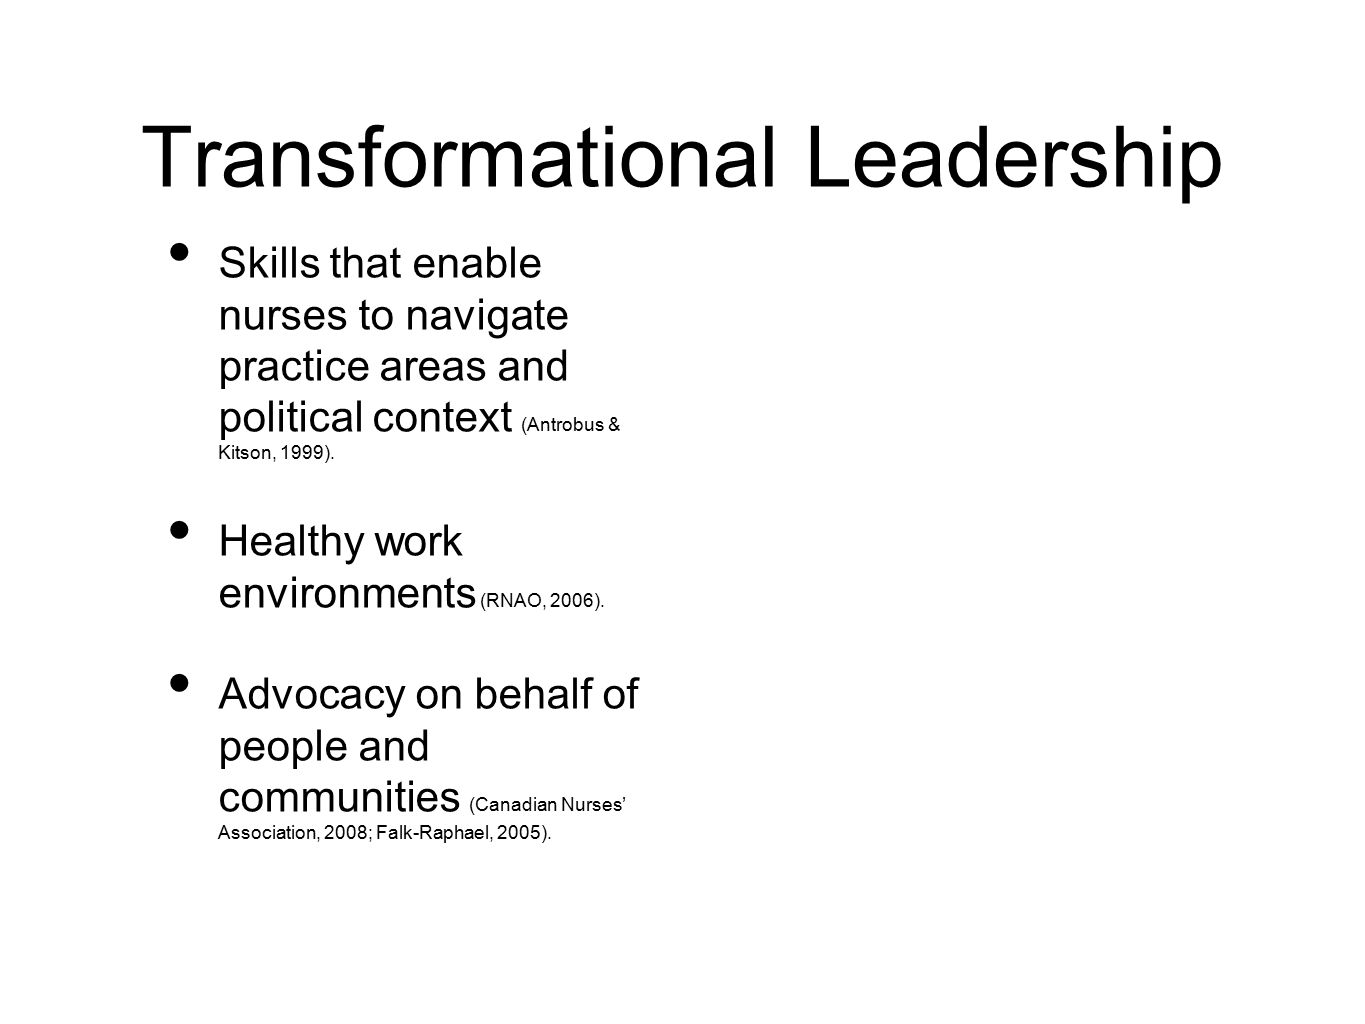 Transformational Leadership Skills that enable nurses to navigate practice areas and political context (Antrobus & Kitson, 1999).